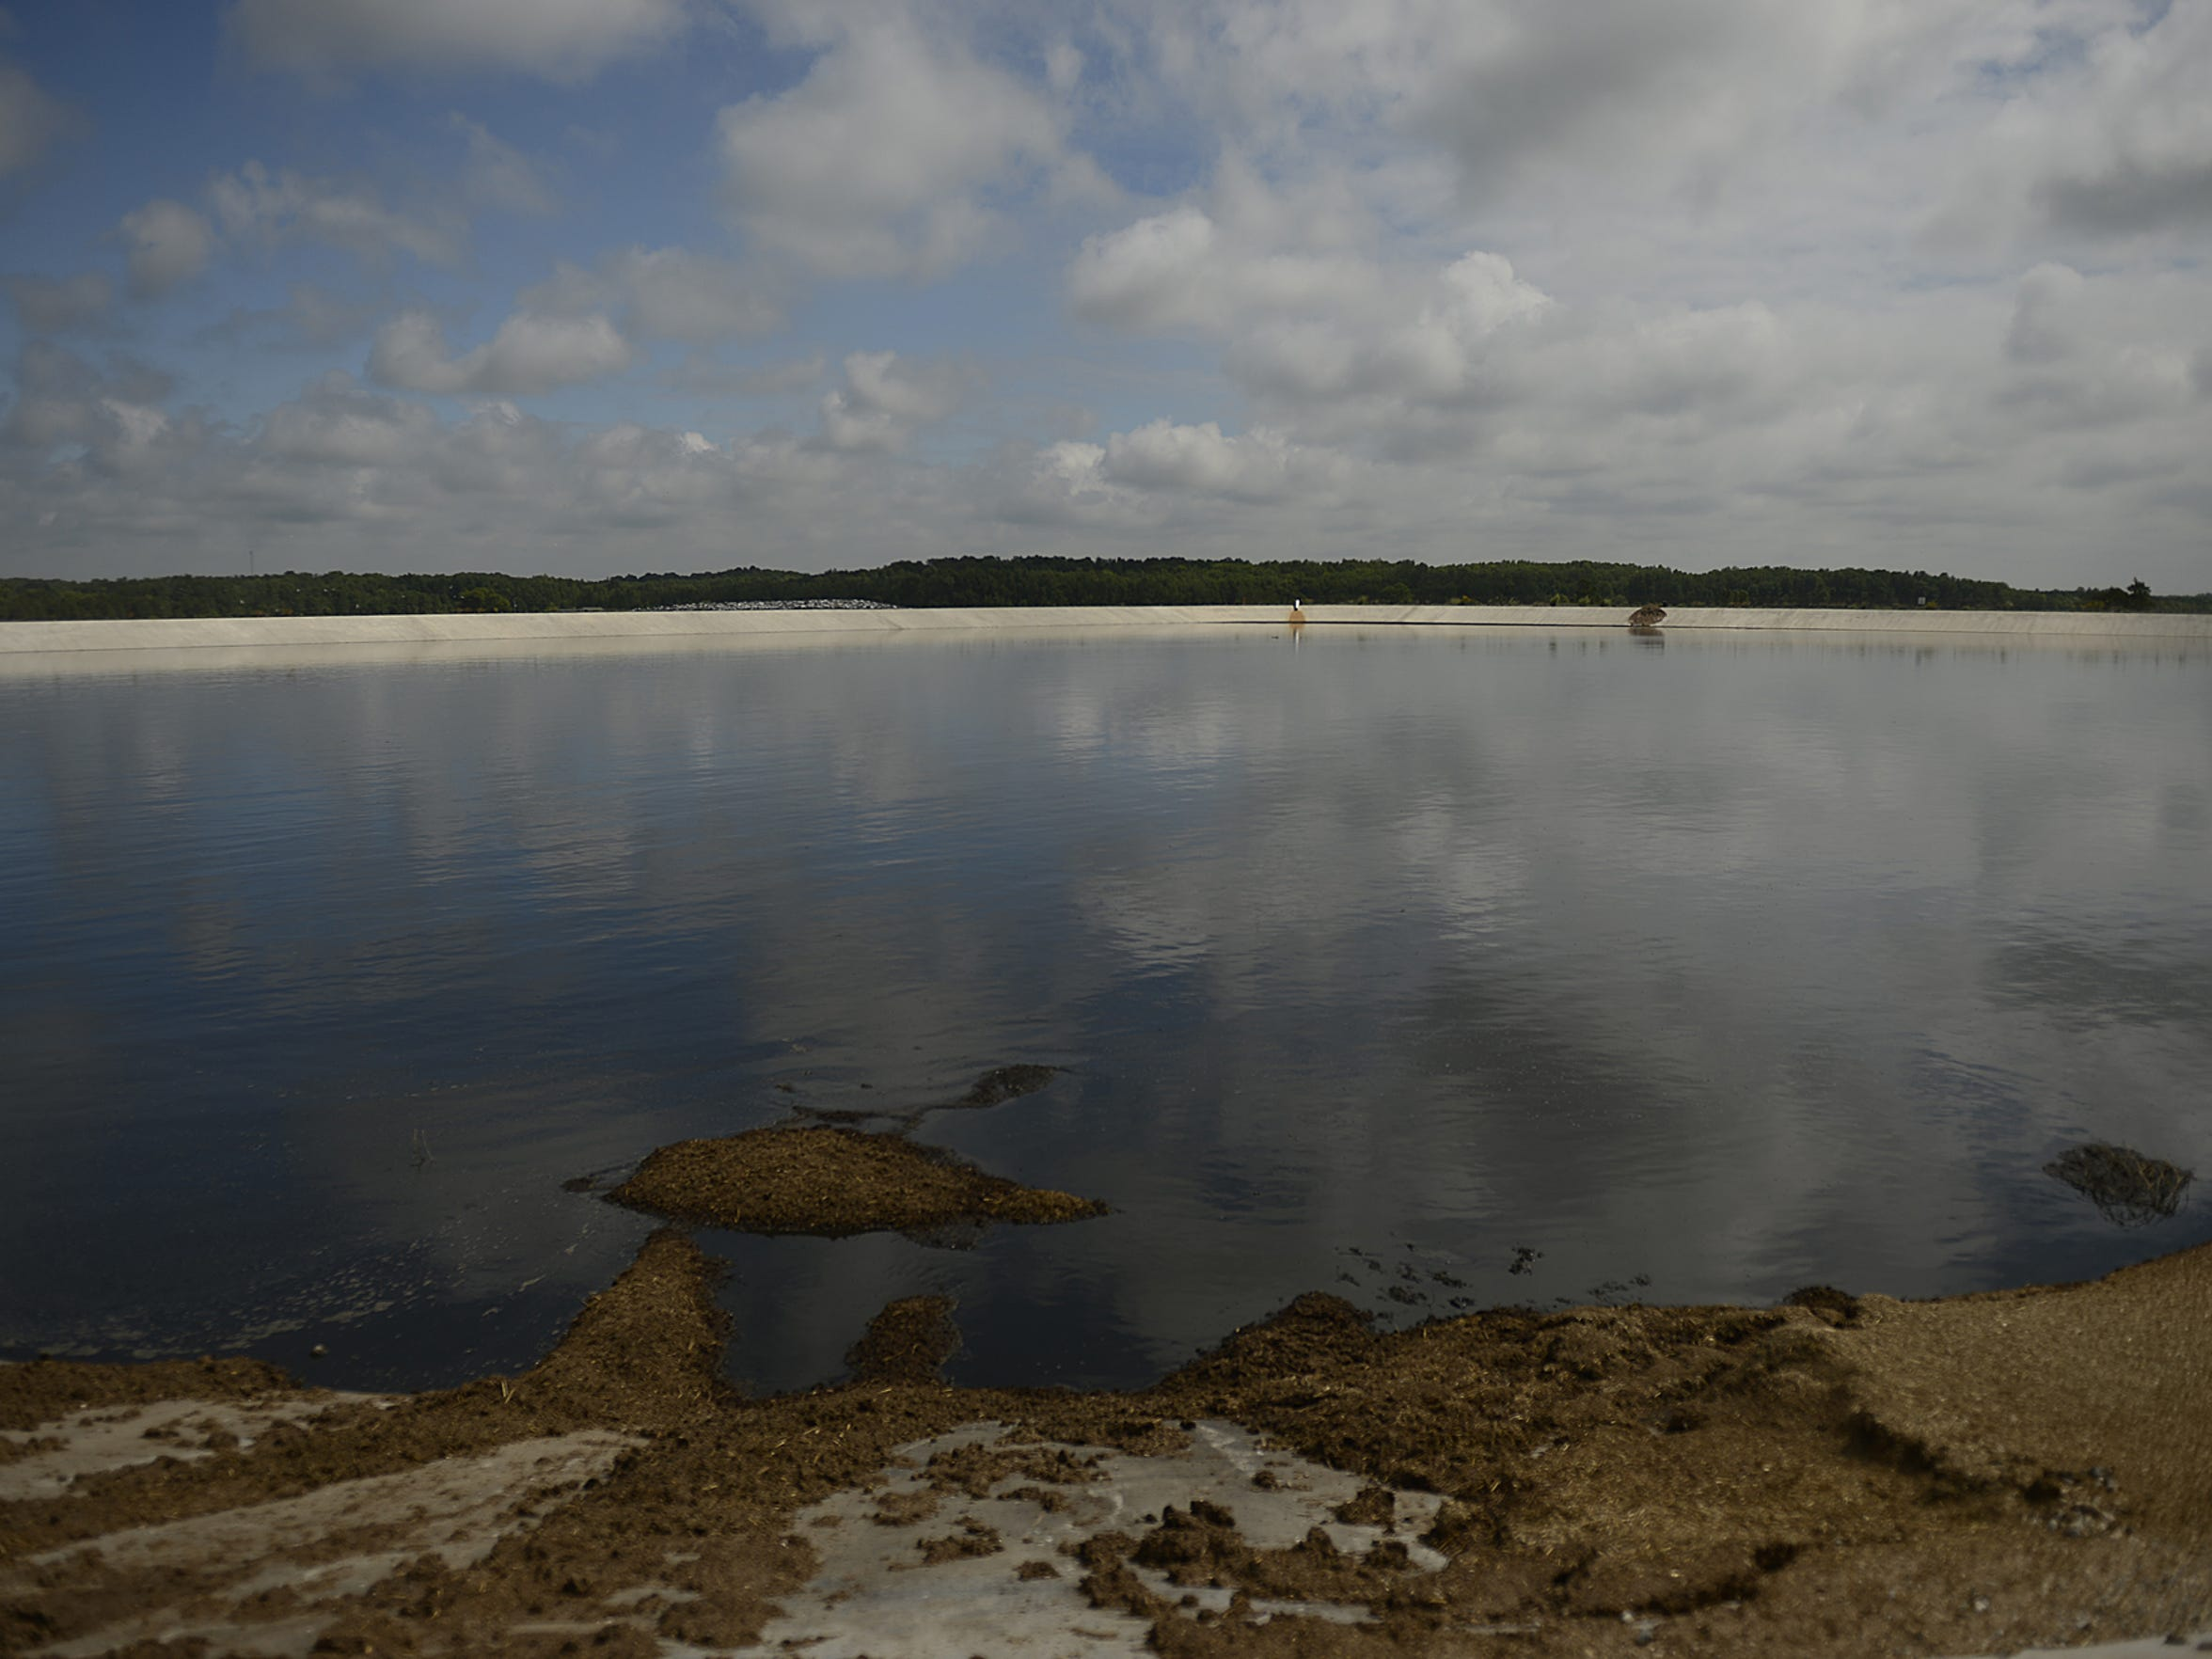 Safe, clean drinking water eludes many in Wisconsin